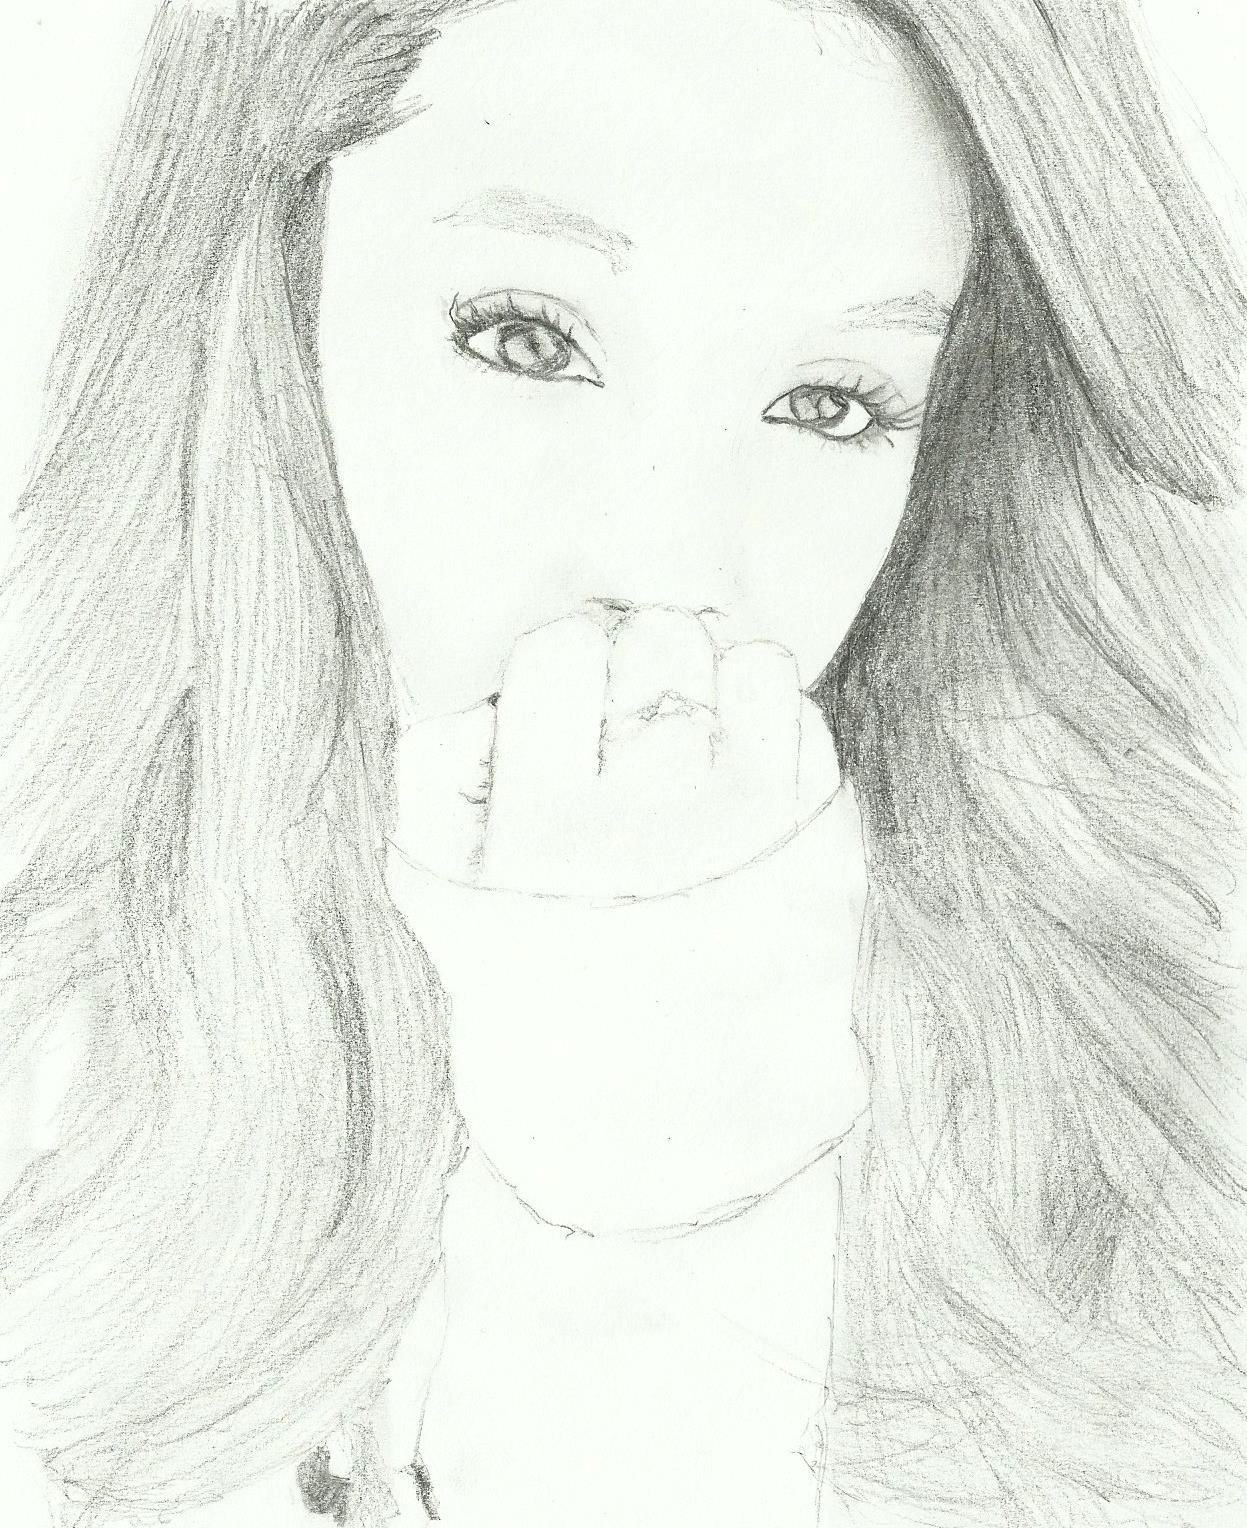 My drawing of ariana grande requested by graceanne12345